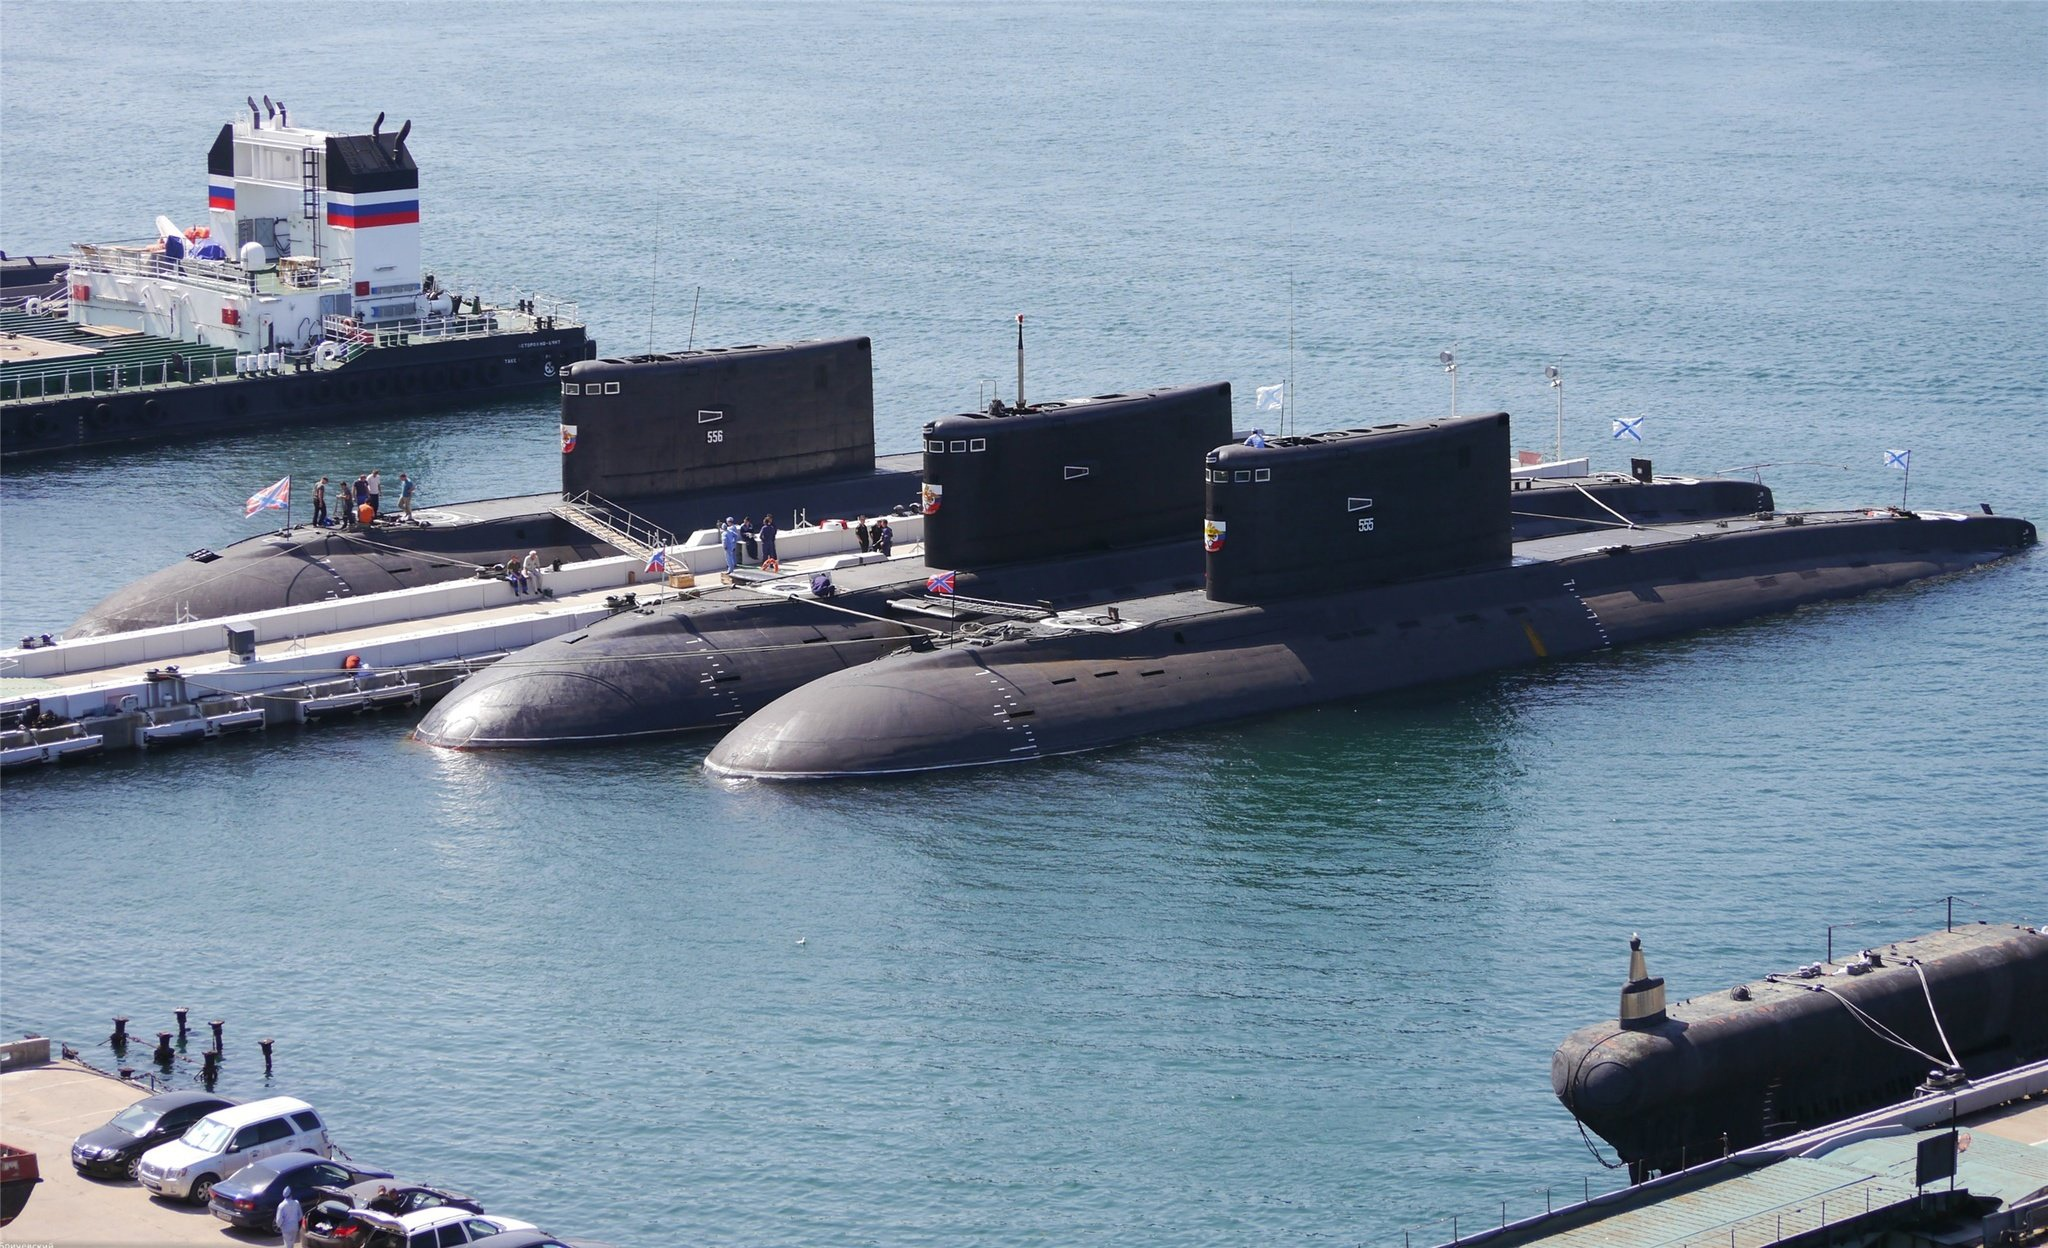 Against the backdrop of NATO exercises, Russia puts all submarines of the Black Sea Fleet on alert